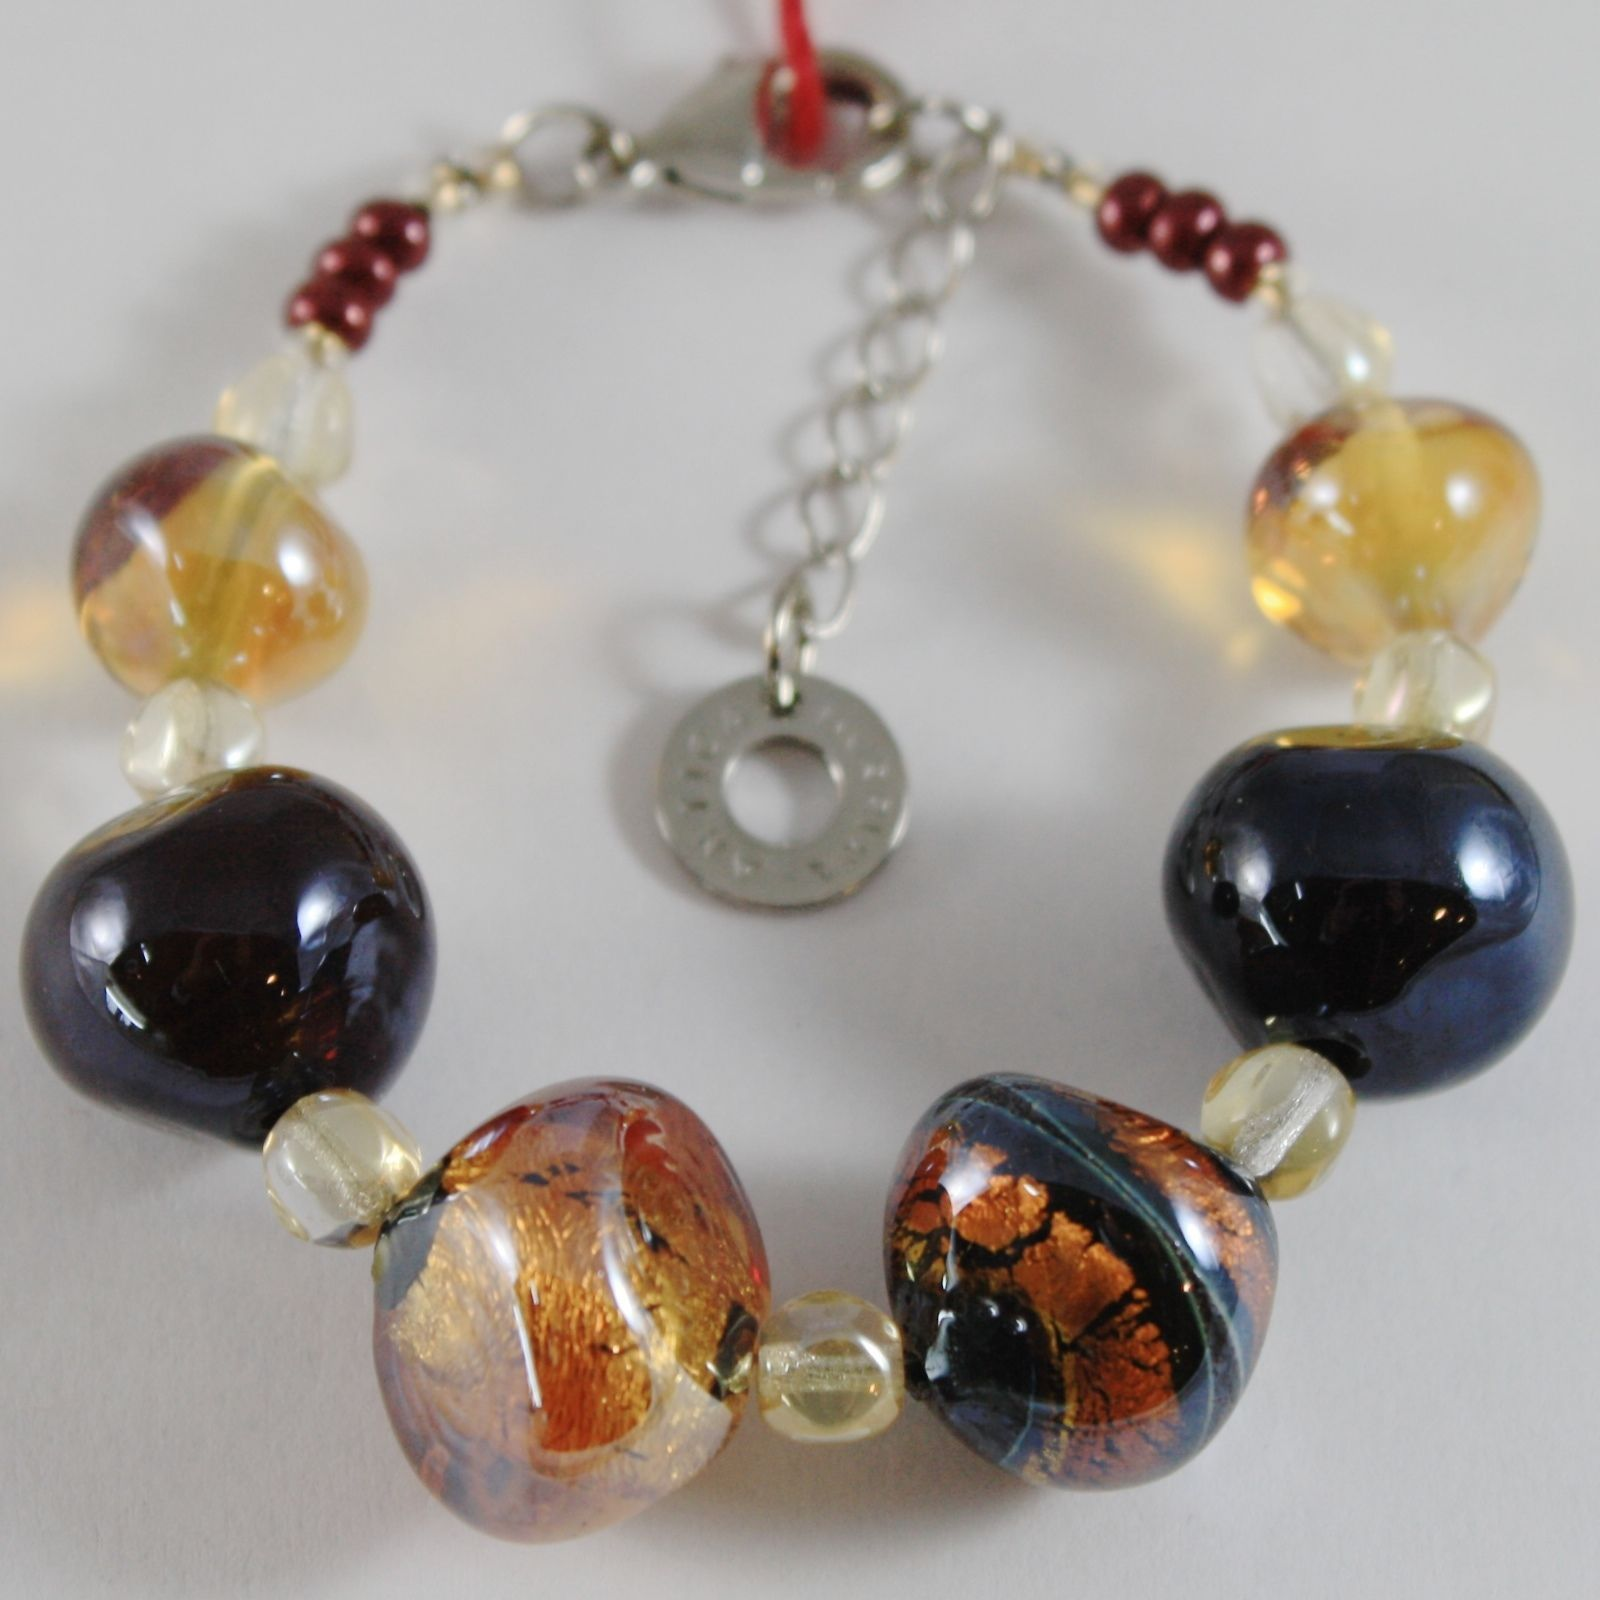 BRACELET ANTICA MURRINA VENEZIA, MURANO GLASS BROWN, AMBER, BEIGE BR727A10